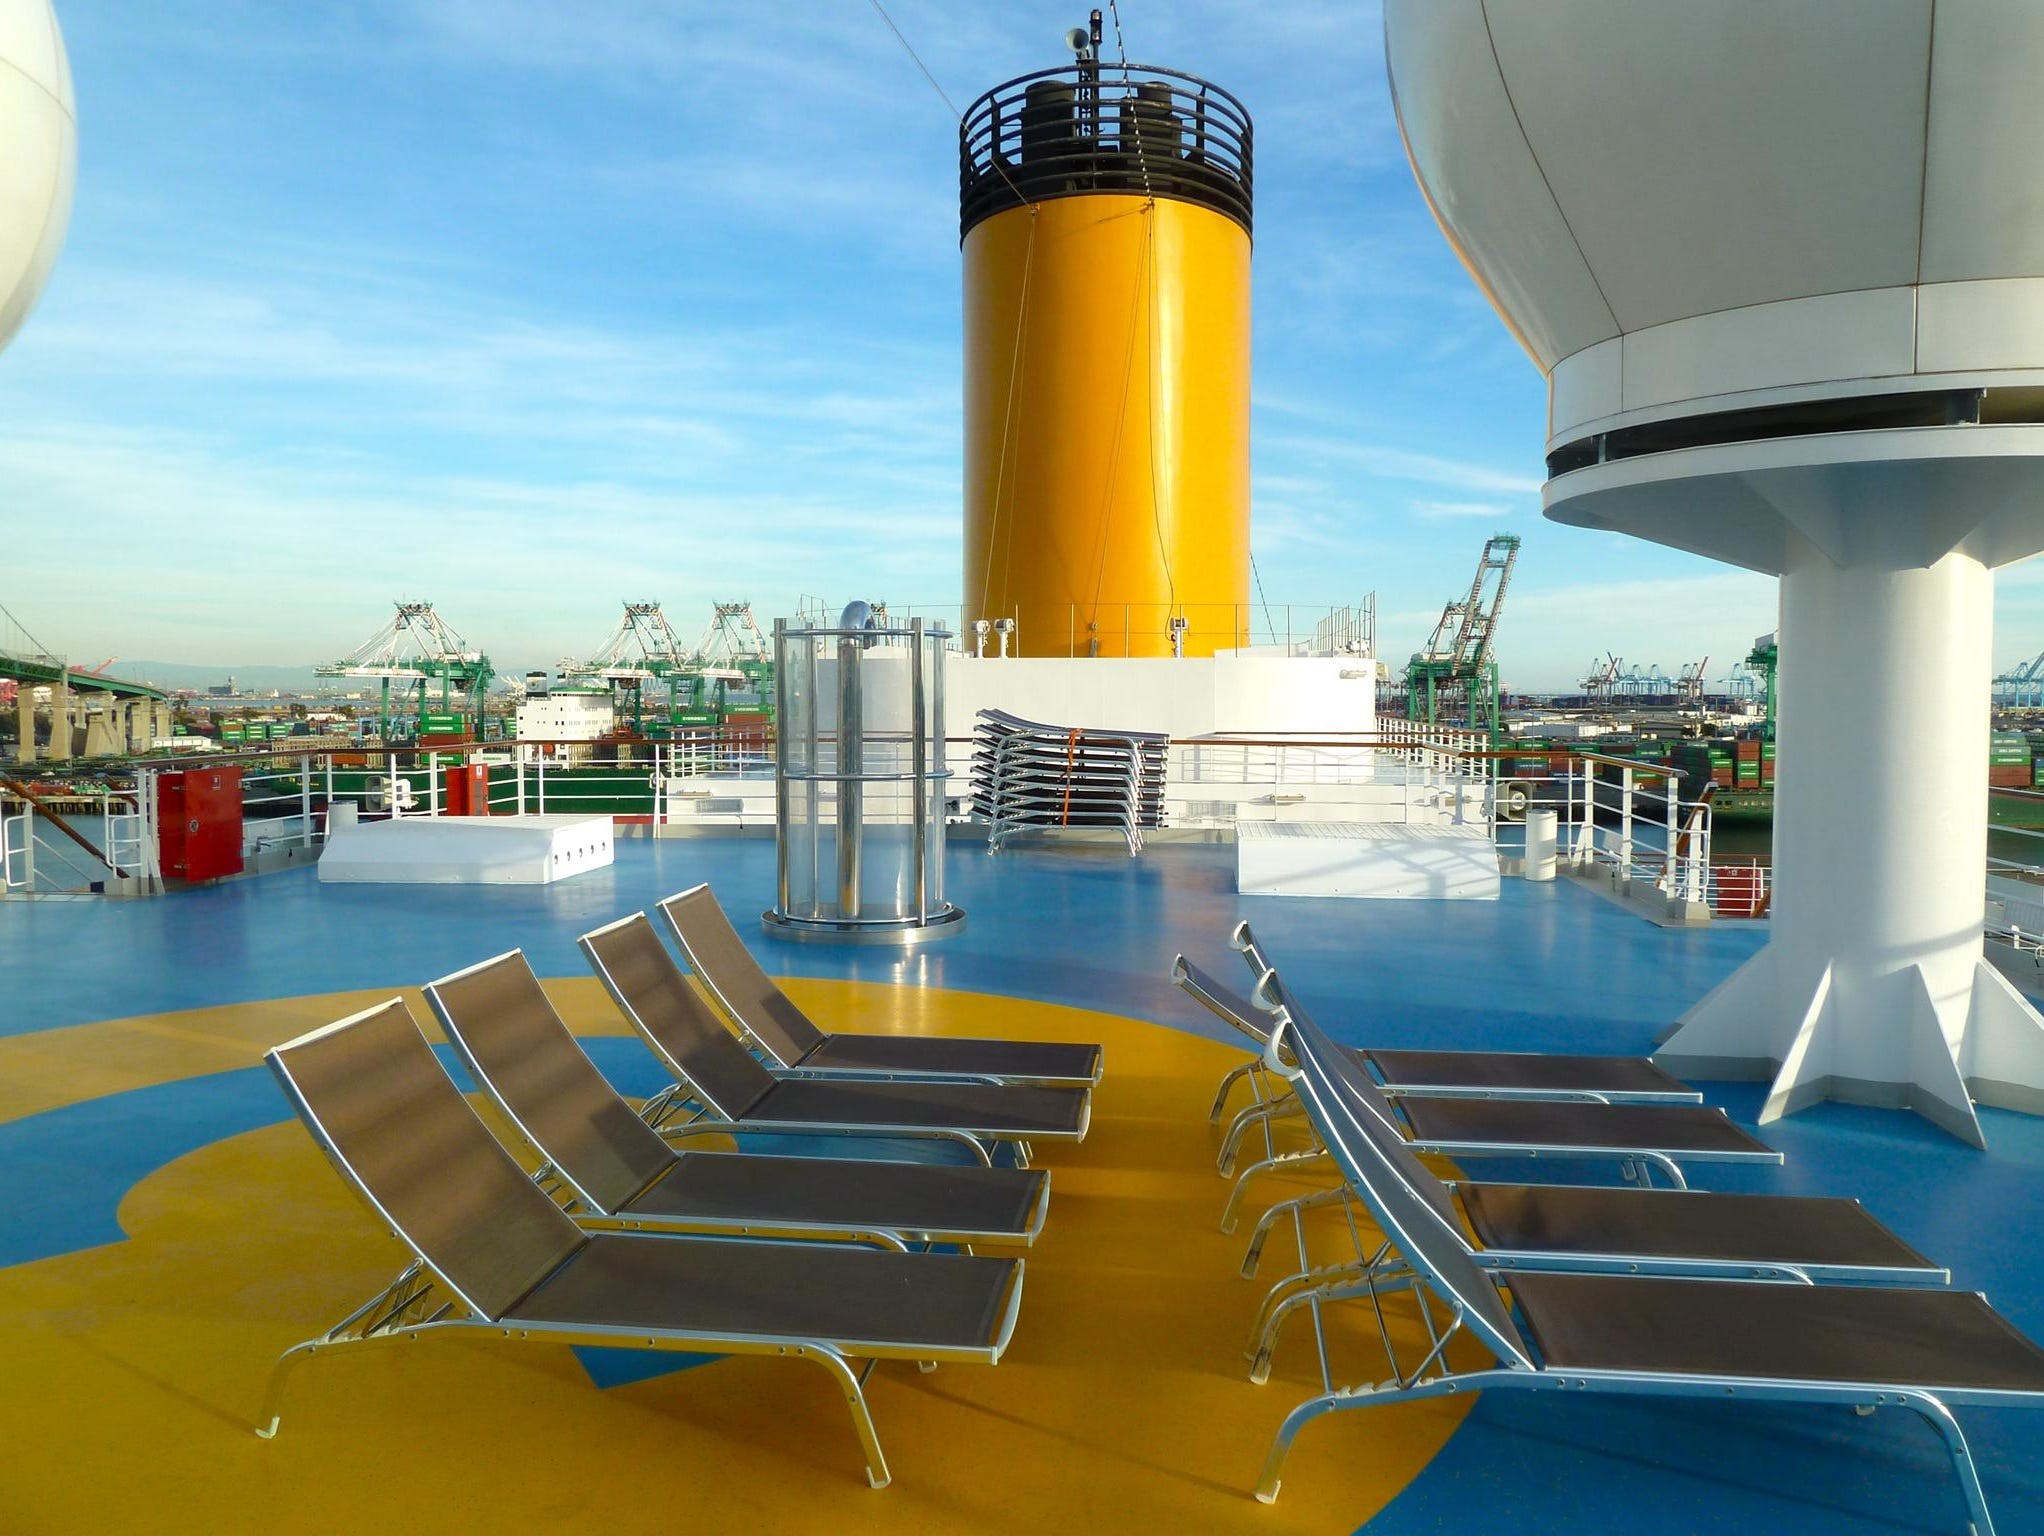 The ship's uppermost level, Girasole Deck (12), is composed of two sunning and observation platforms. The forward portion of Girasole Deck is encircled by the jogging and rollerskating track on the deck below.